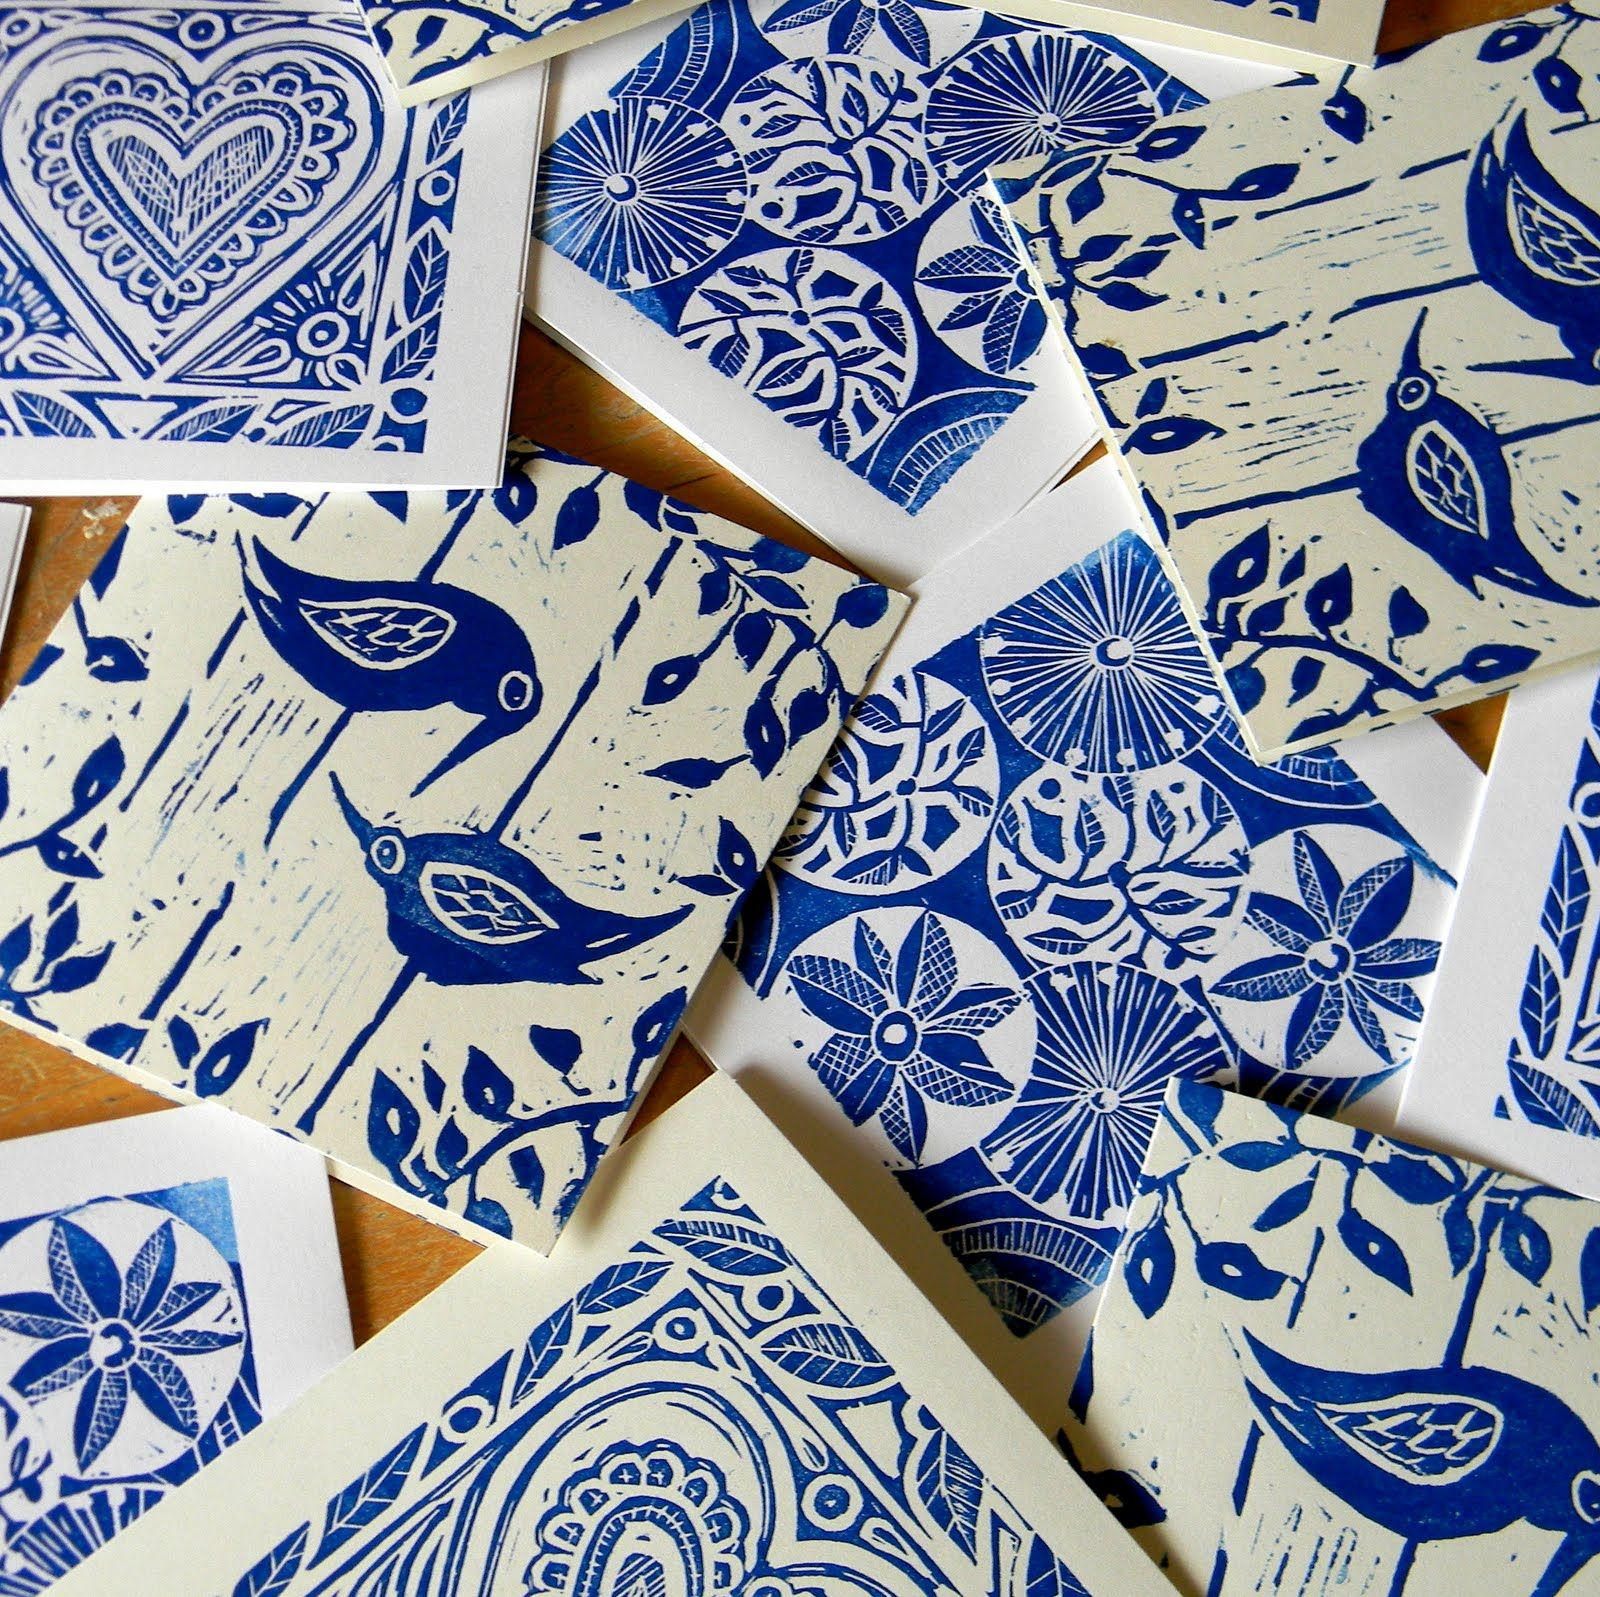 Lino prints -  blue and White. perhaps a foam plate print would be easier to get a great floral